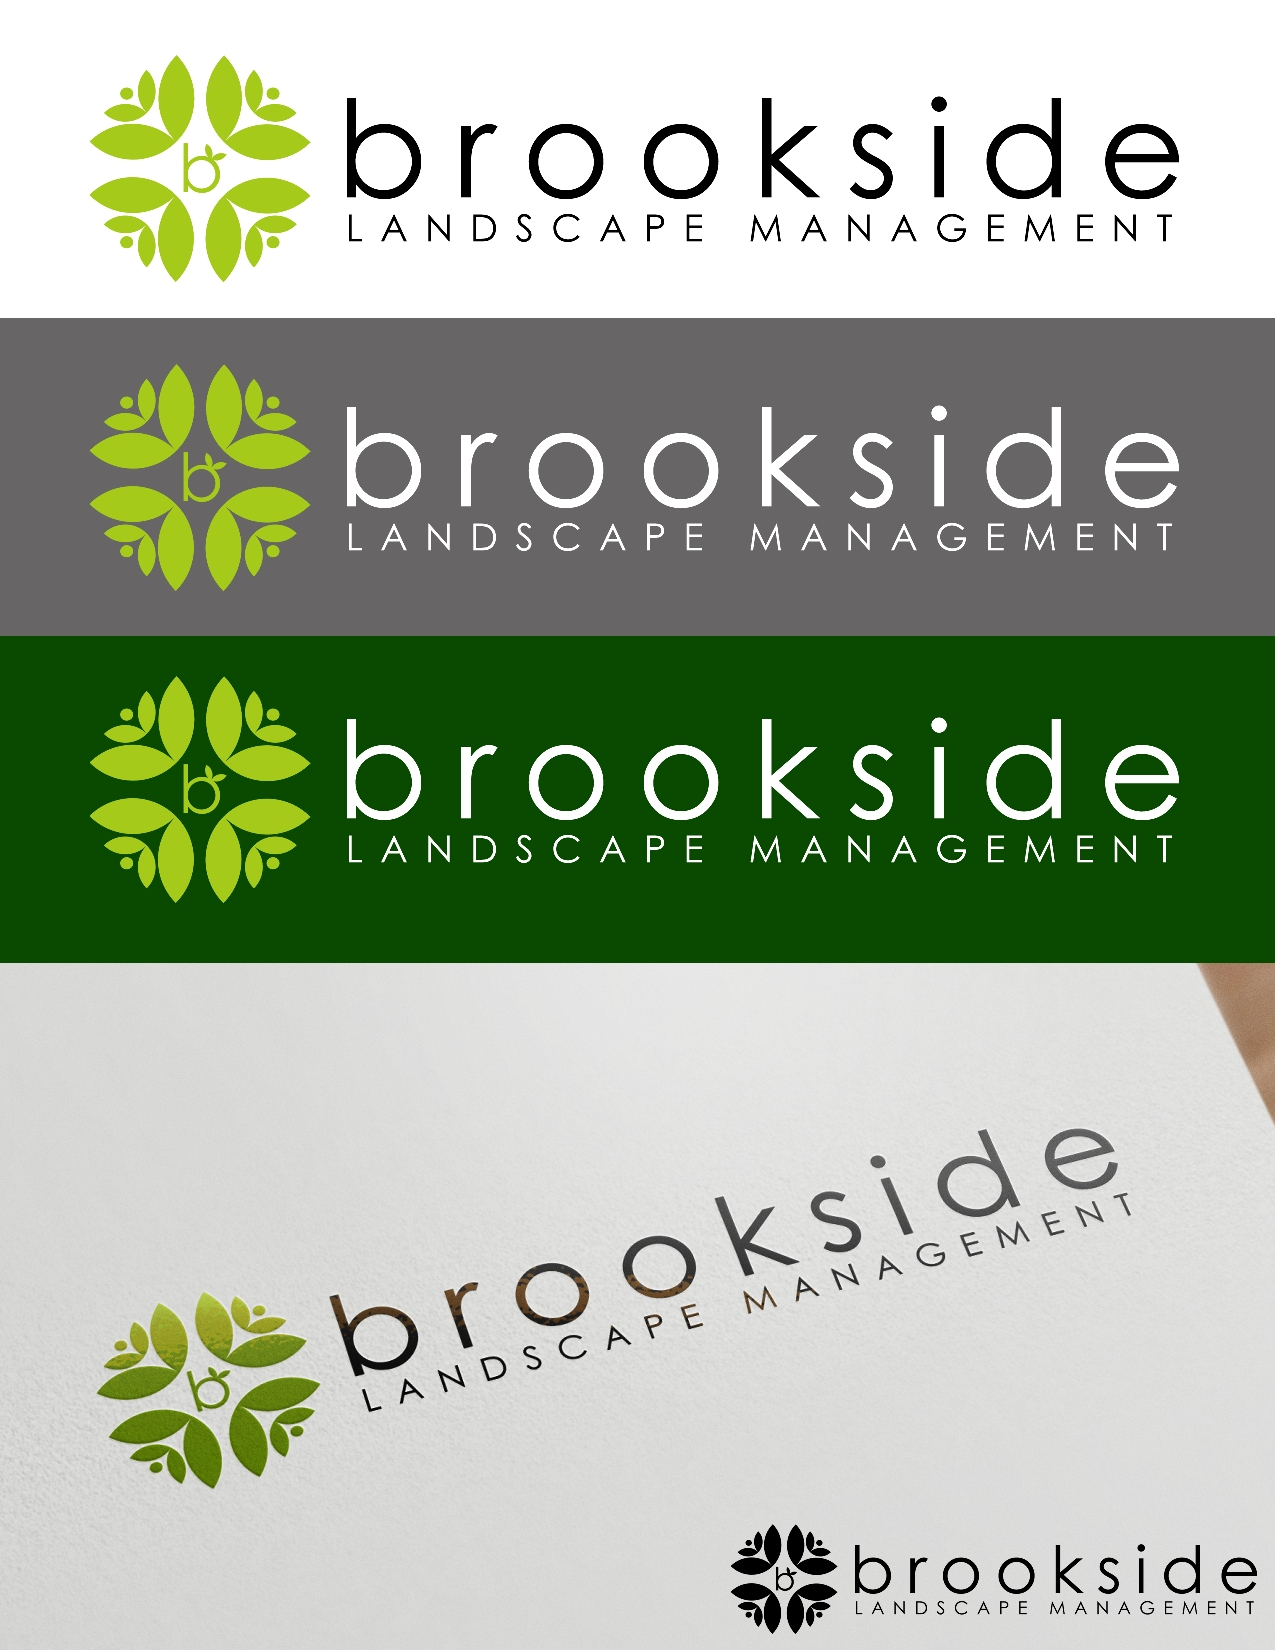 Logo Design by Juan_Kata - Entry No. 148 in the Logo Design Contest New Logo Design for Brookside Landscape Management.